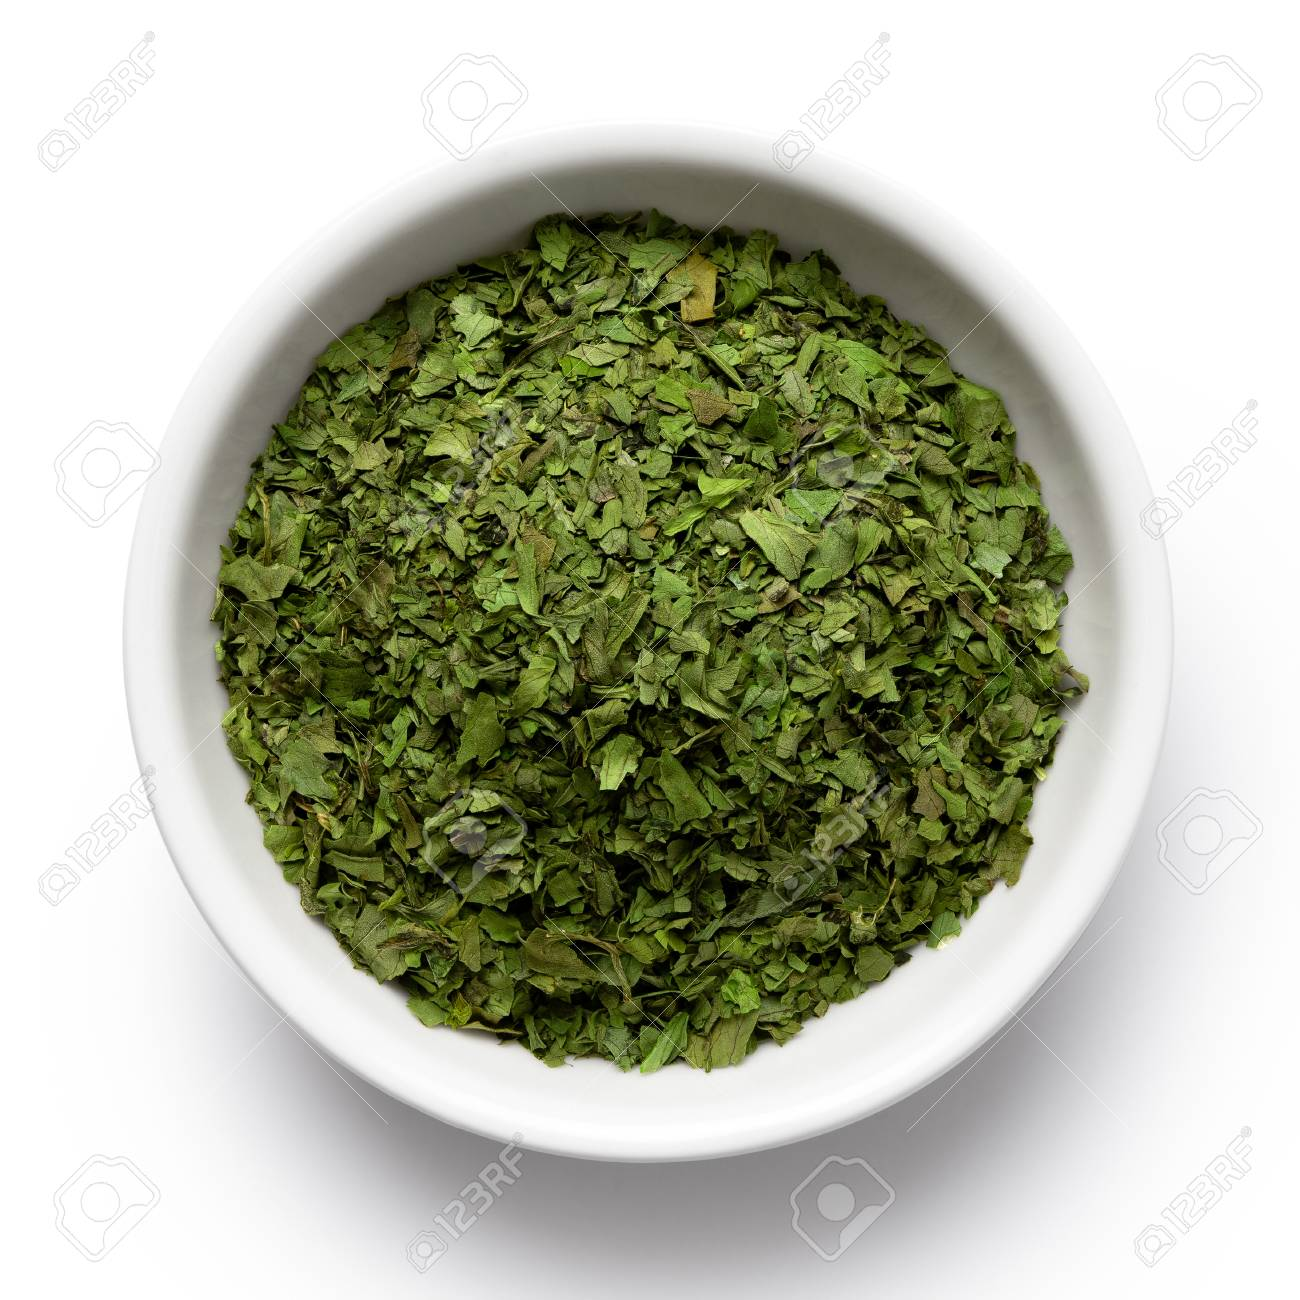 Dried chopped coriander leaves in white ceramic bowl isolated on white from above. - 117174692